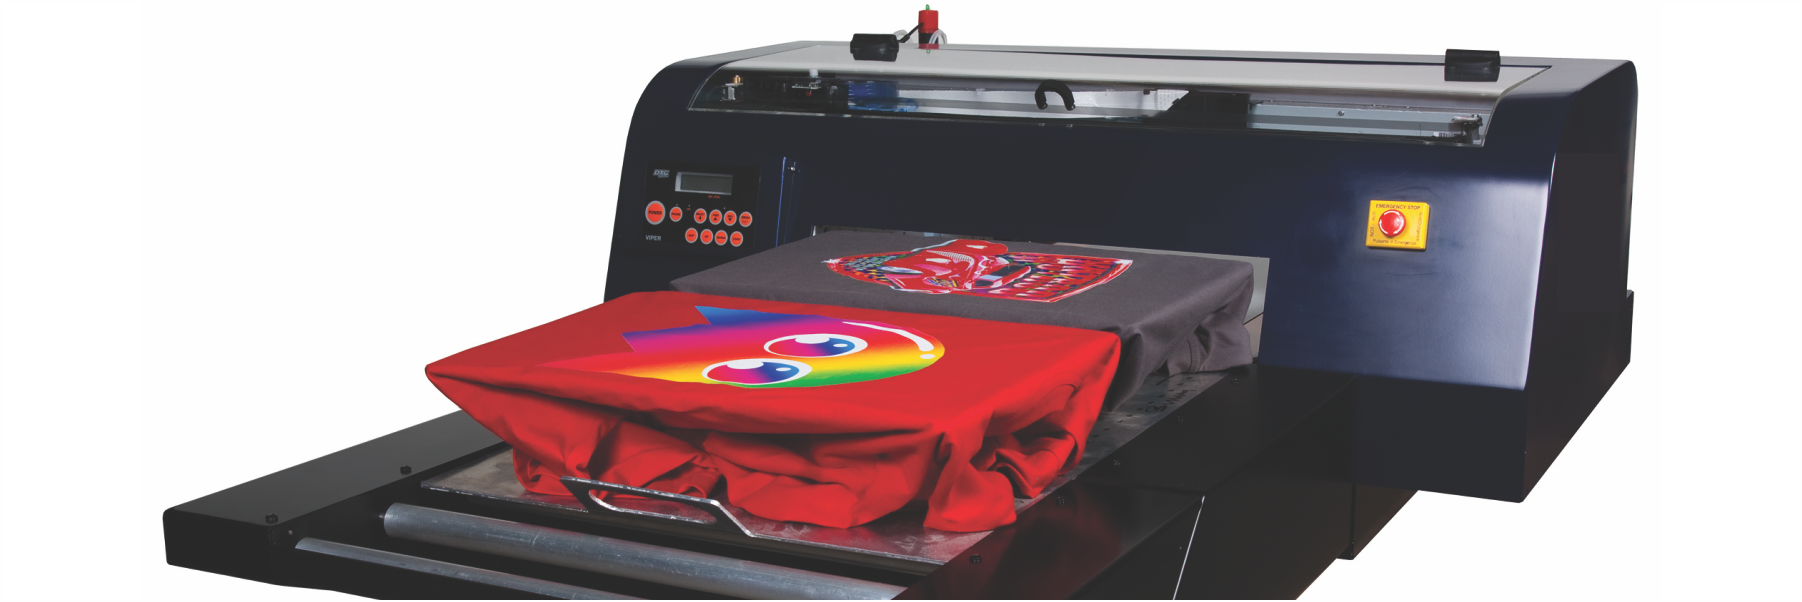 Coloring online no printing - We Also Print Full Color T Shirts With A Direct To Garment Printer For Fast Full Color Shirts With No Set Up Cost We Recommend To Print With Our Direct To